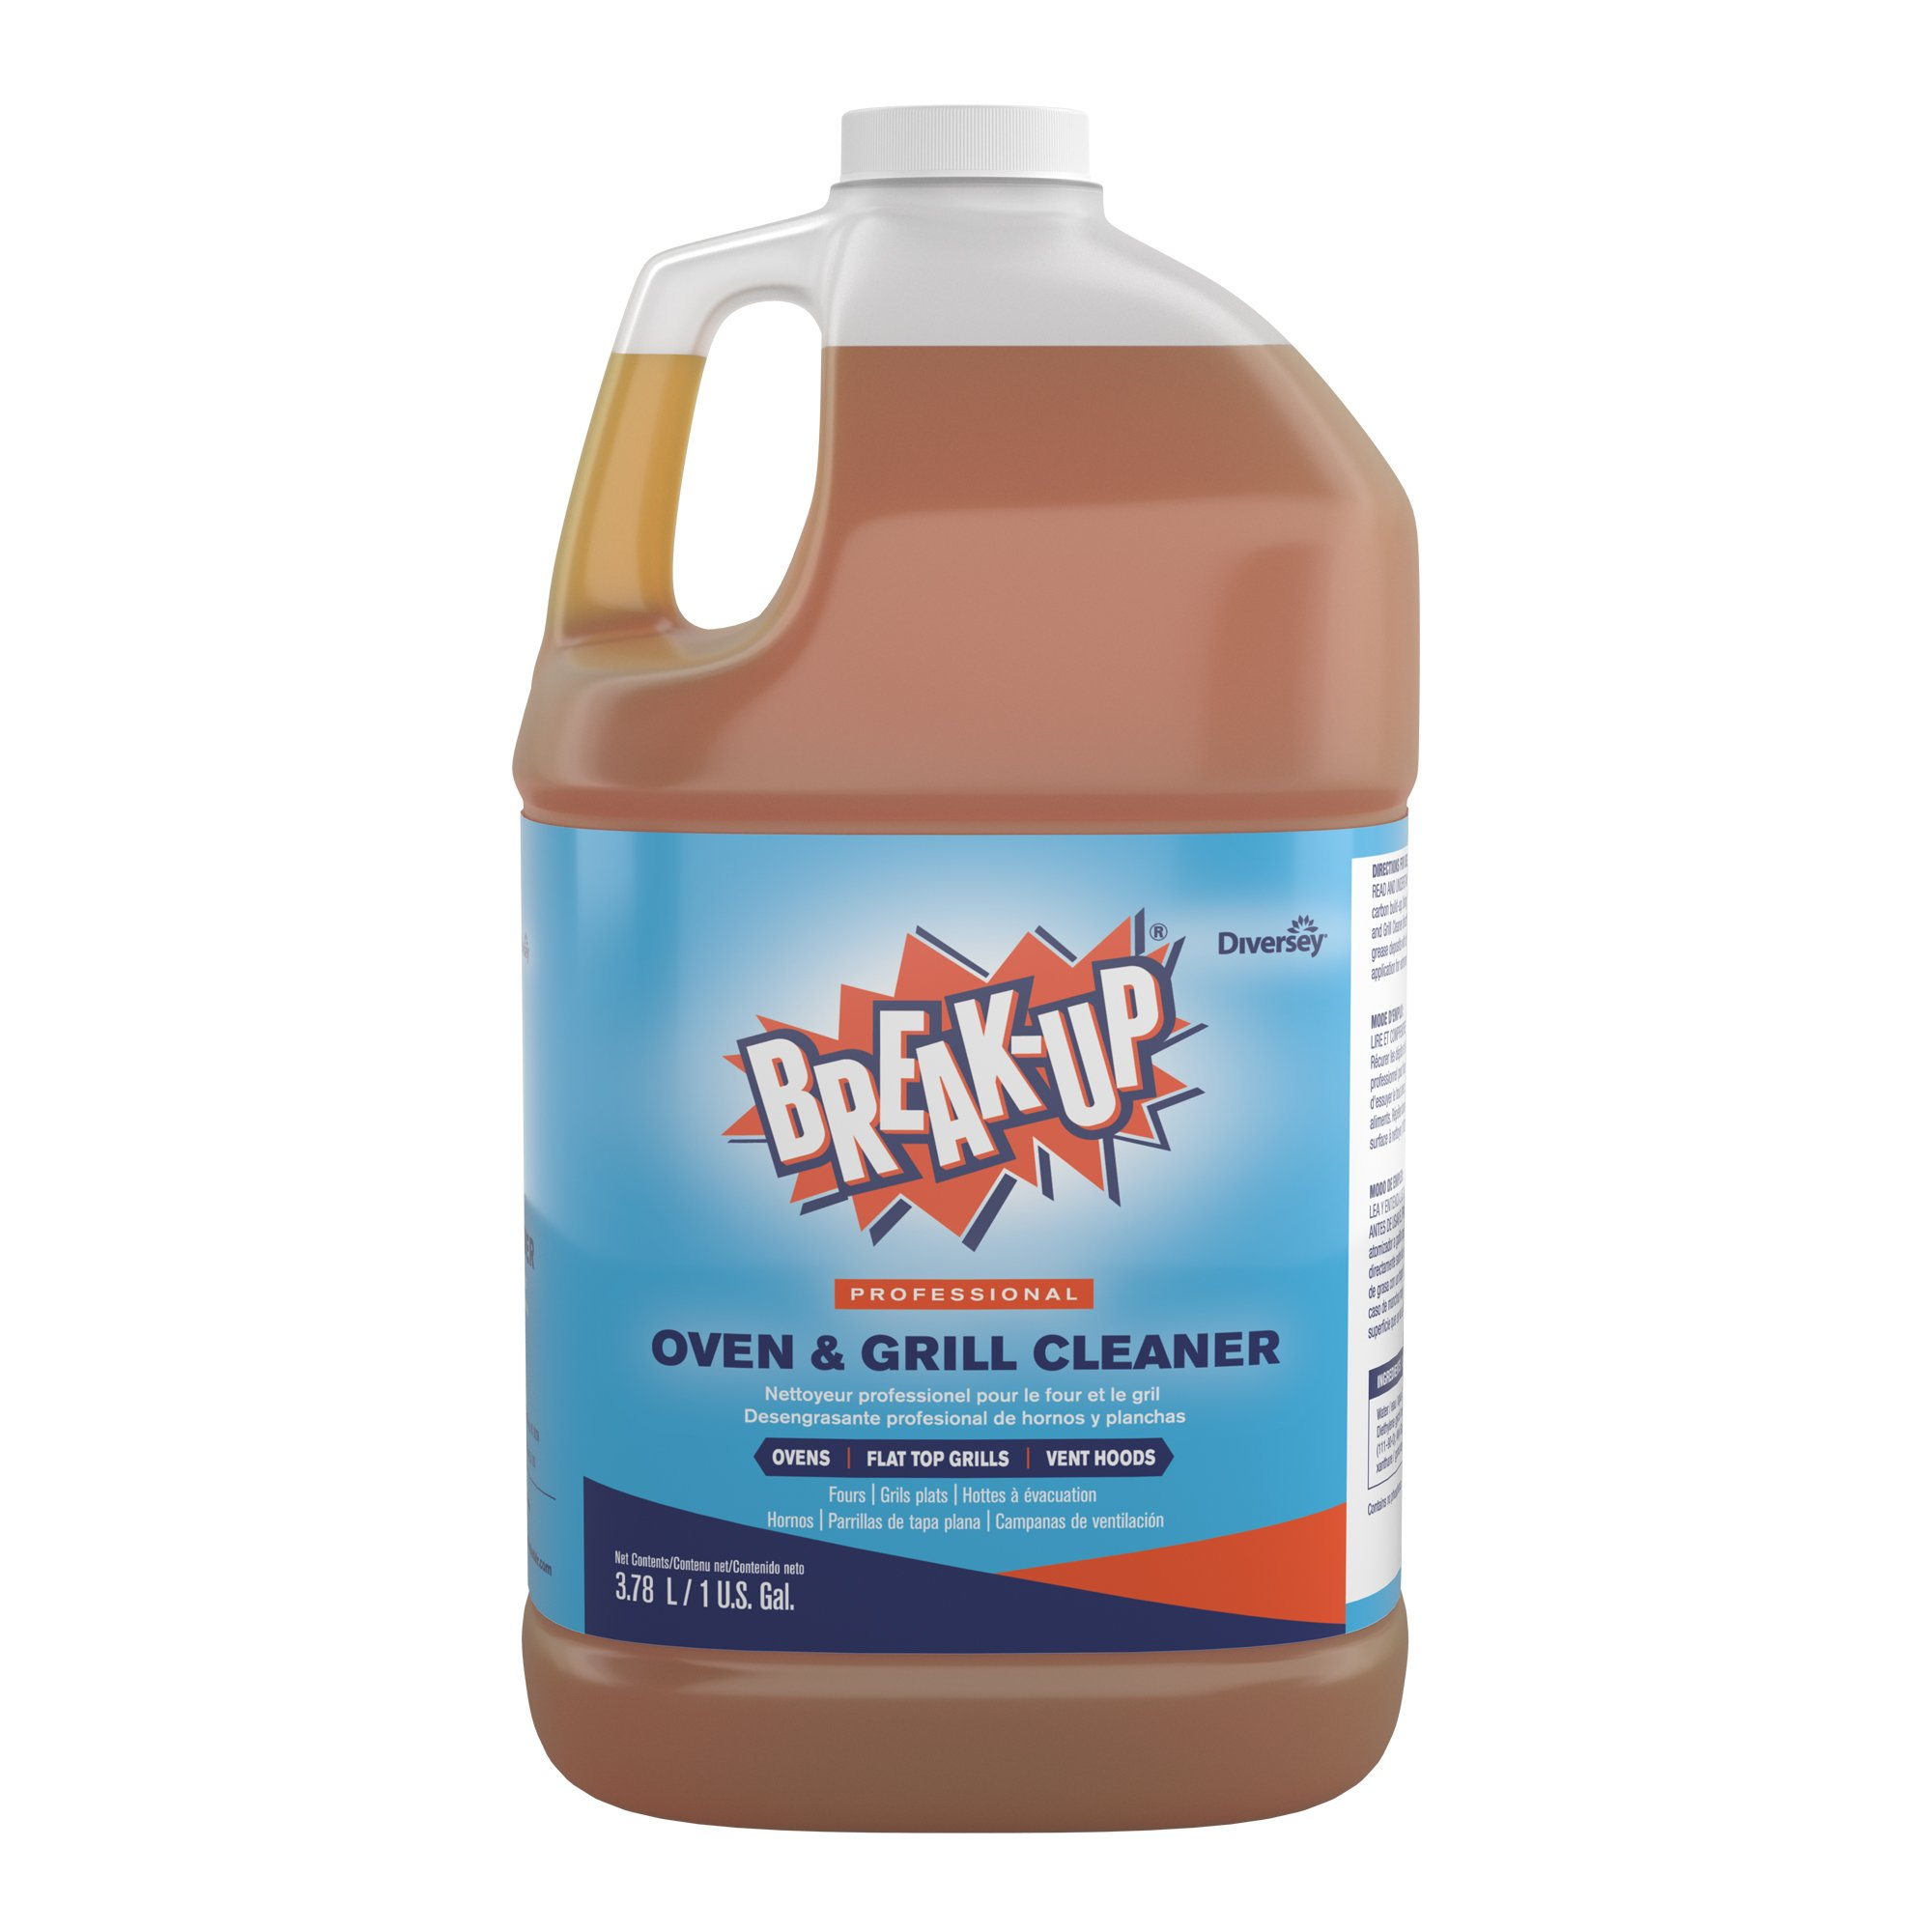 Diversey Break-Up Professional Oven & Grill Cleaner, 1 Gallon (4 Pack) by Diversey